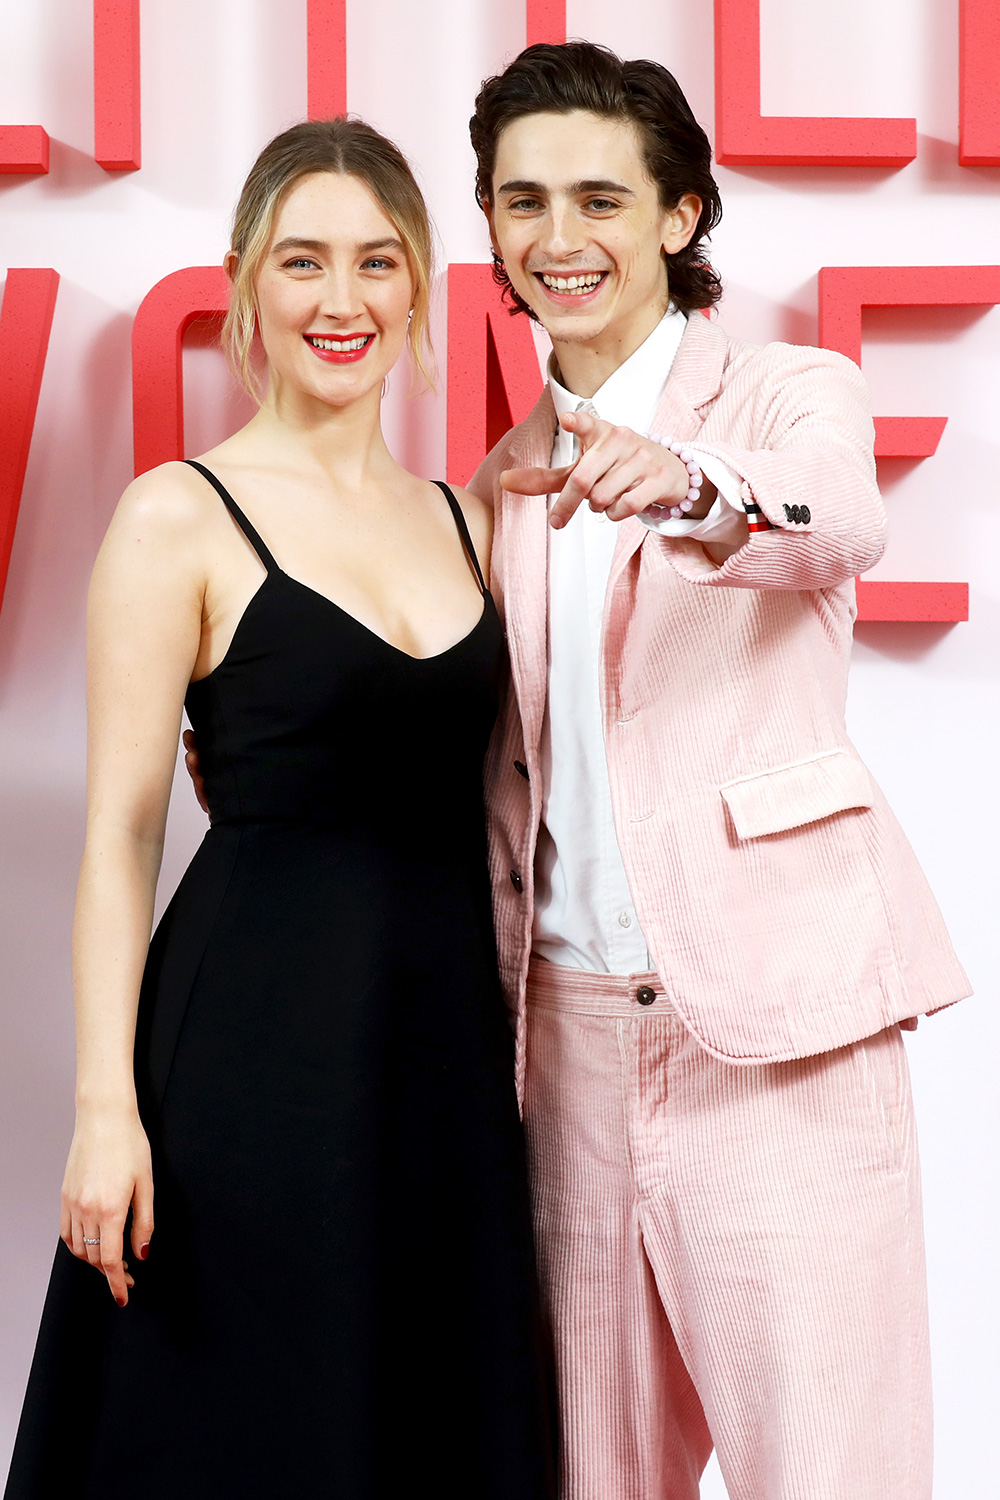 Saoirse Ronan and Timothee Chalamet attend the Little Women London evening photocall at the Soho Hotel on December 16, 2019 in London, England. Little Women releases in UK cinemas on 26th December